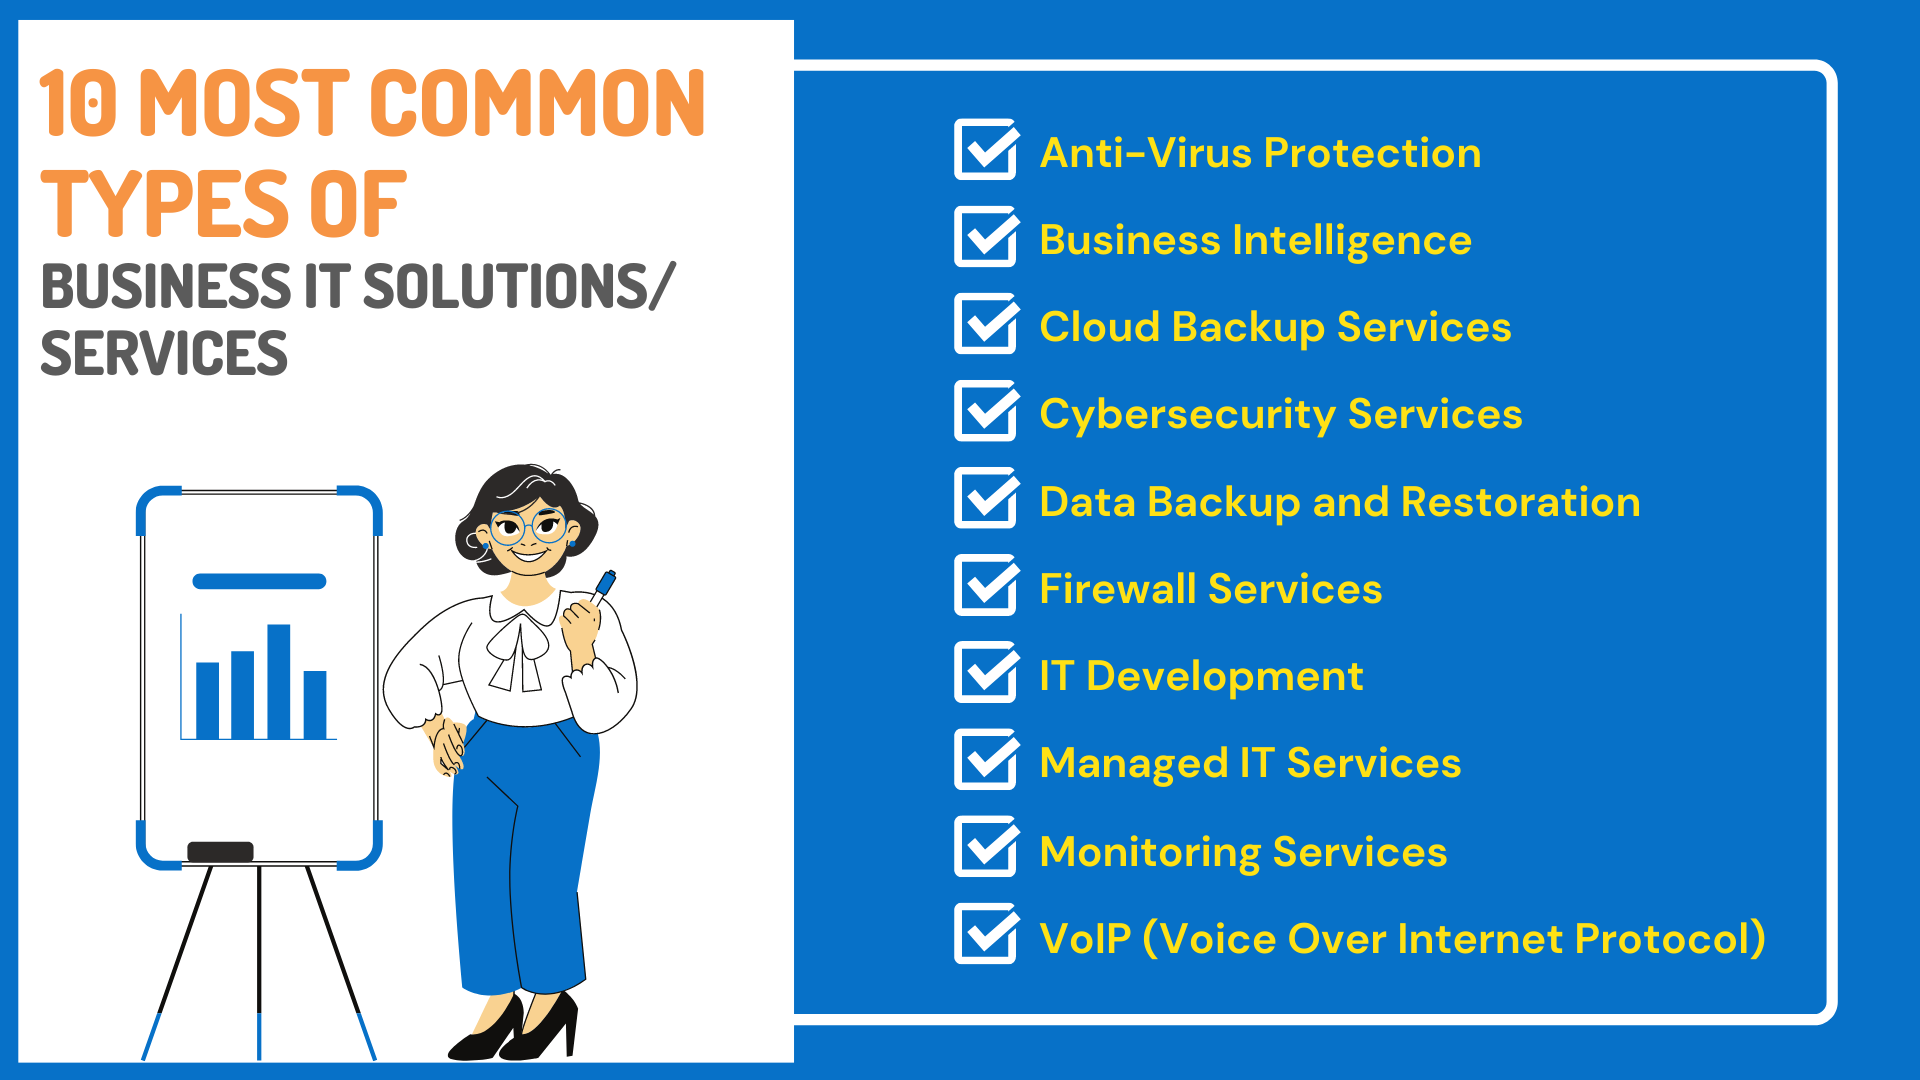 10 Most Common Types of Business IT Solutions/ Services